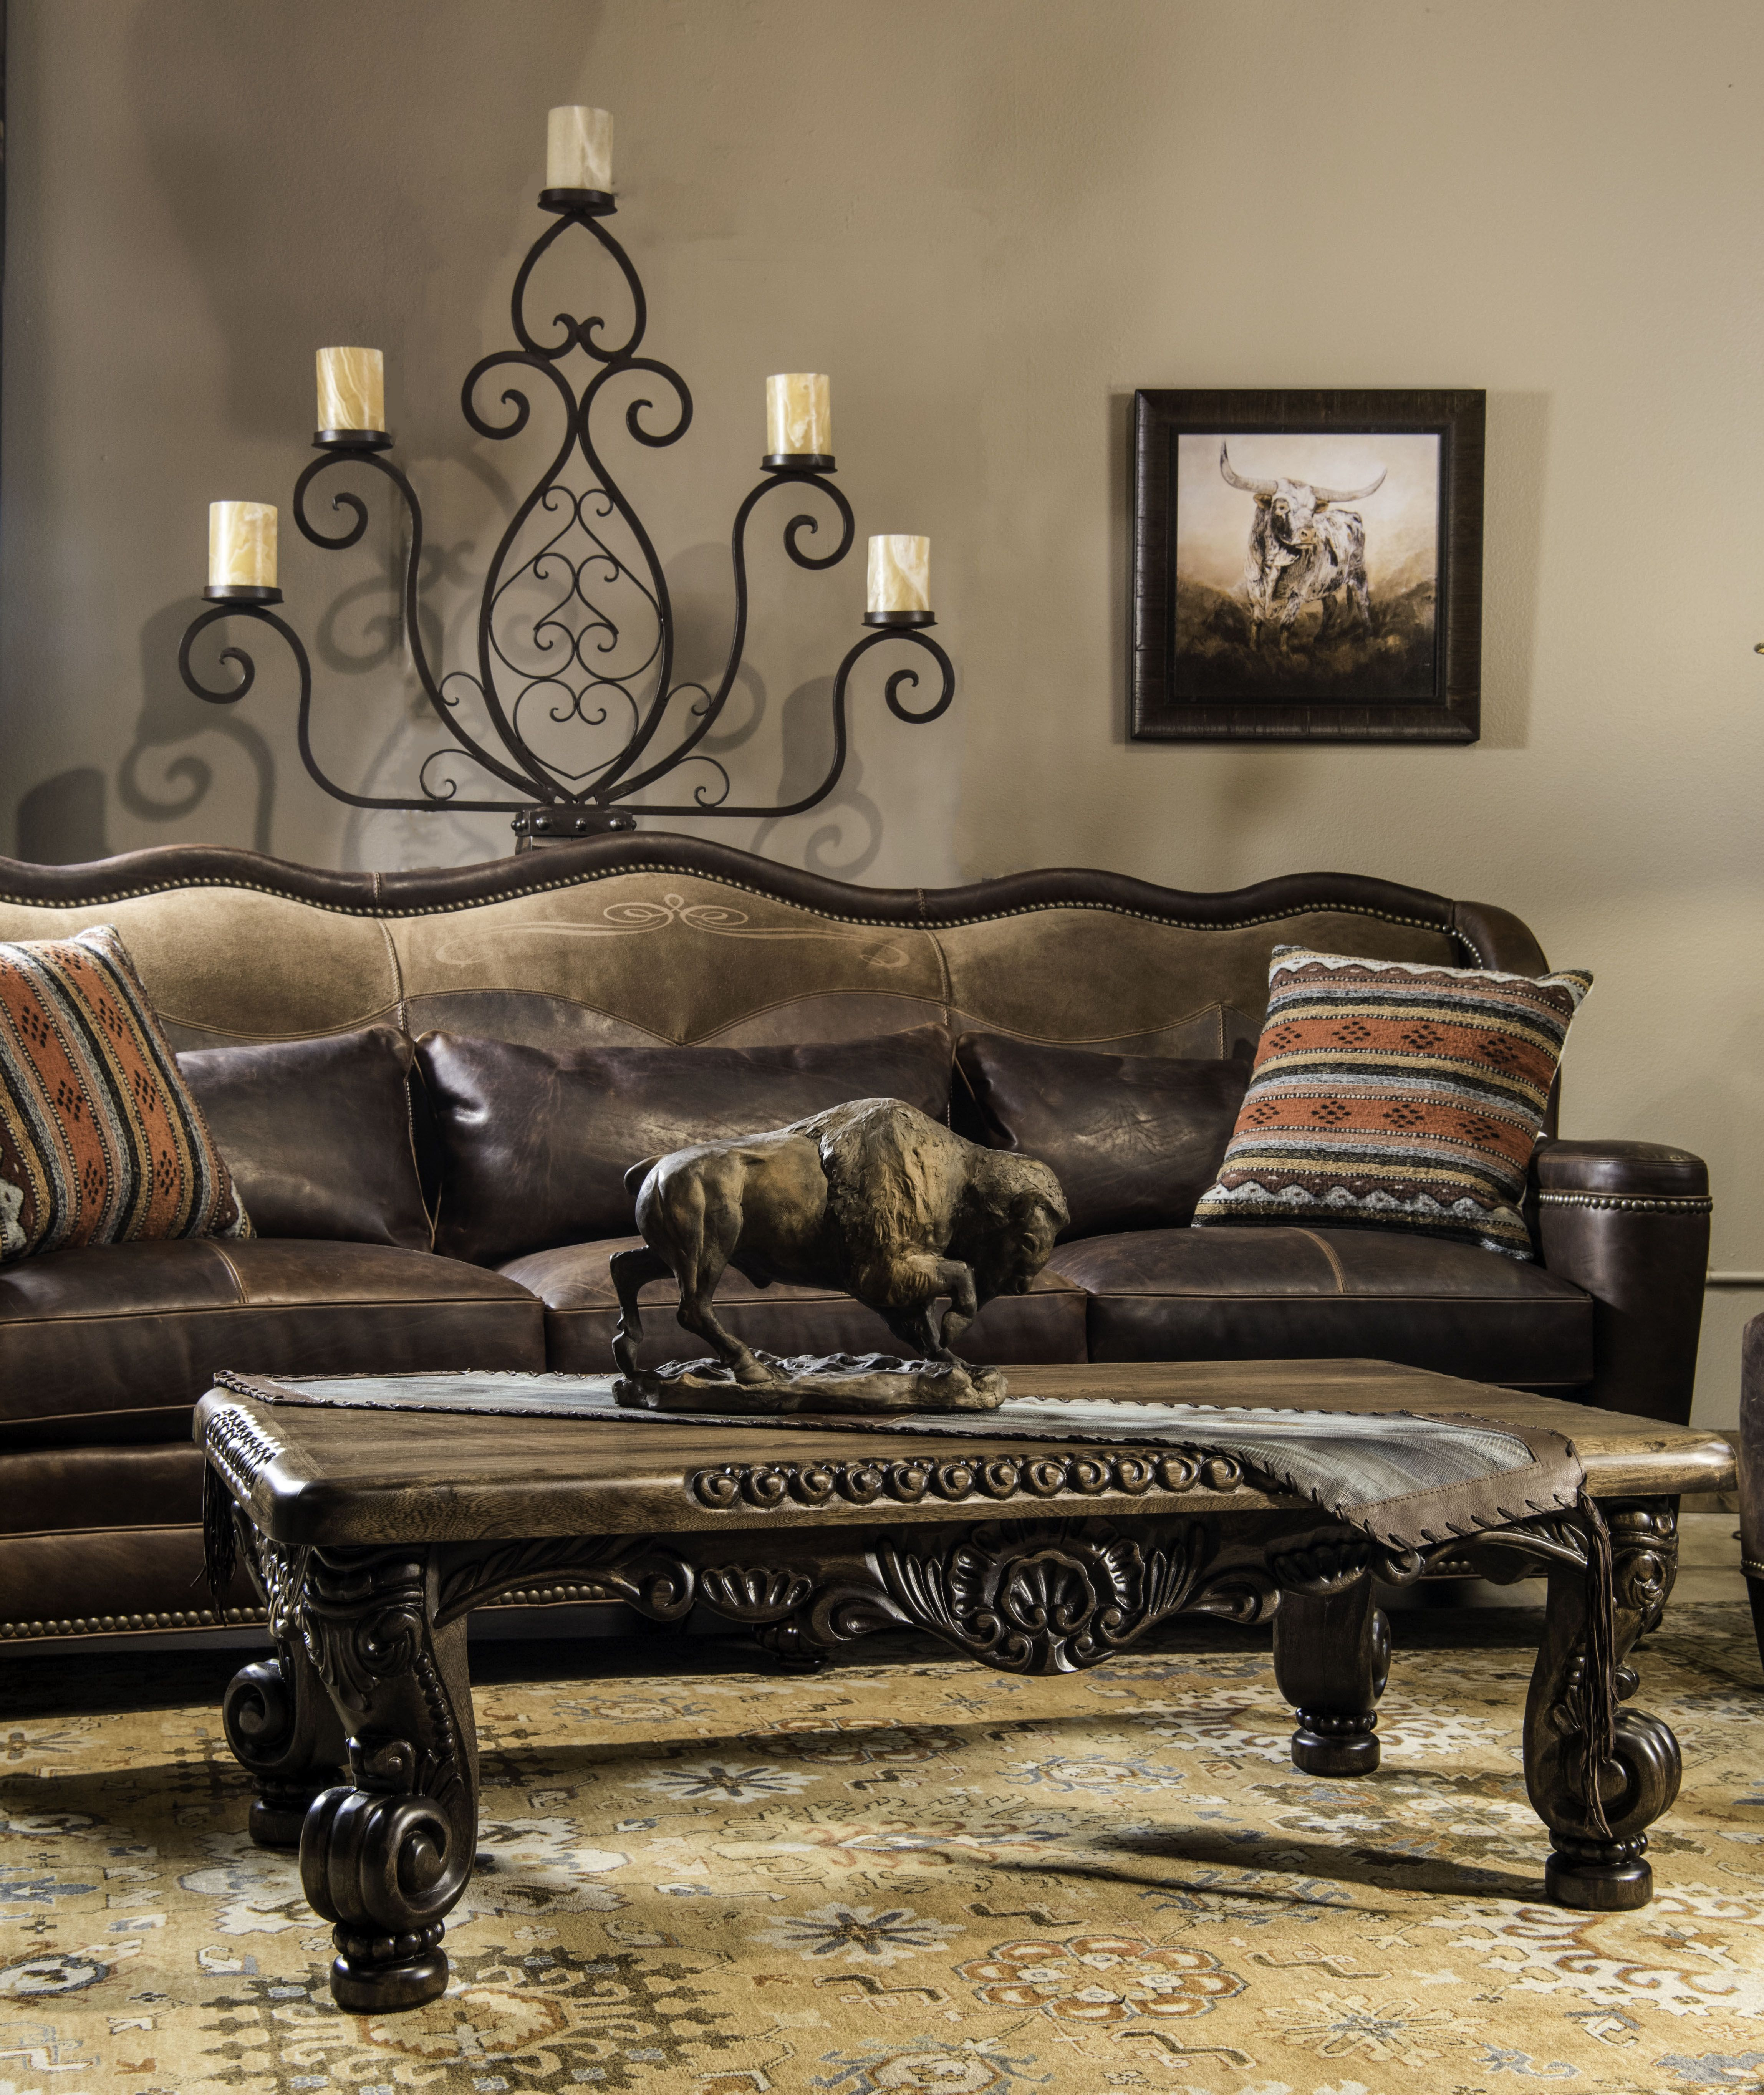 Maverick Sofa At Adobe Interiors For More Information Contact 817 294 0053 Fort Worth Texasrustic Furnitureadobedesign